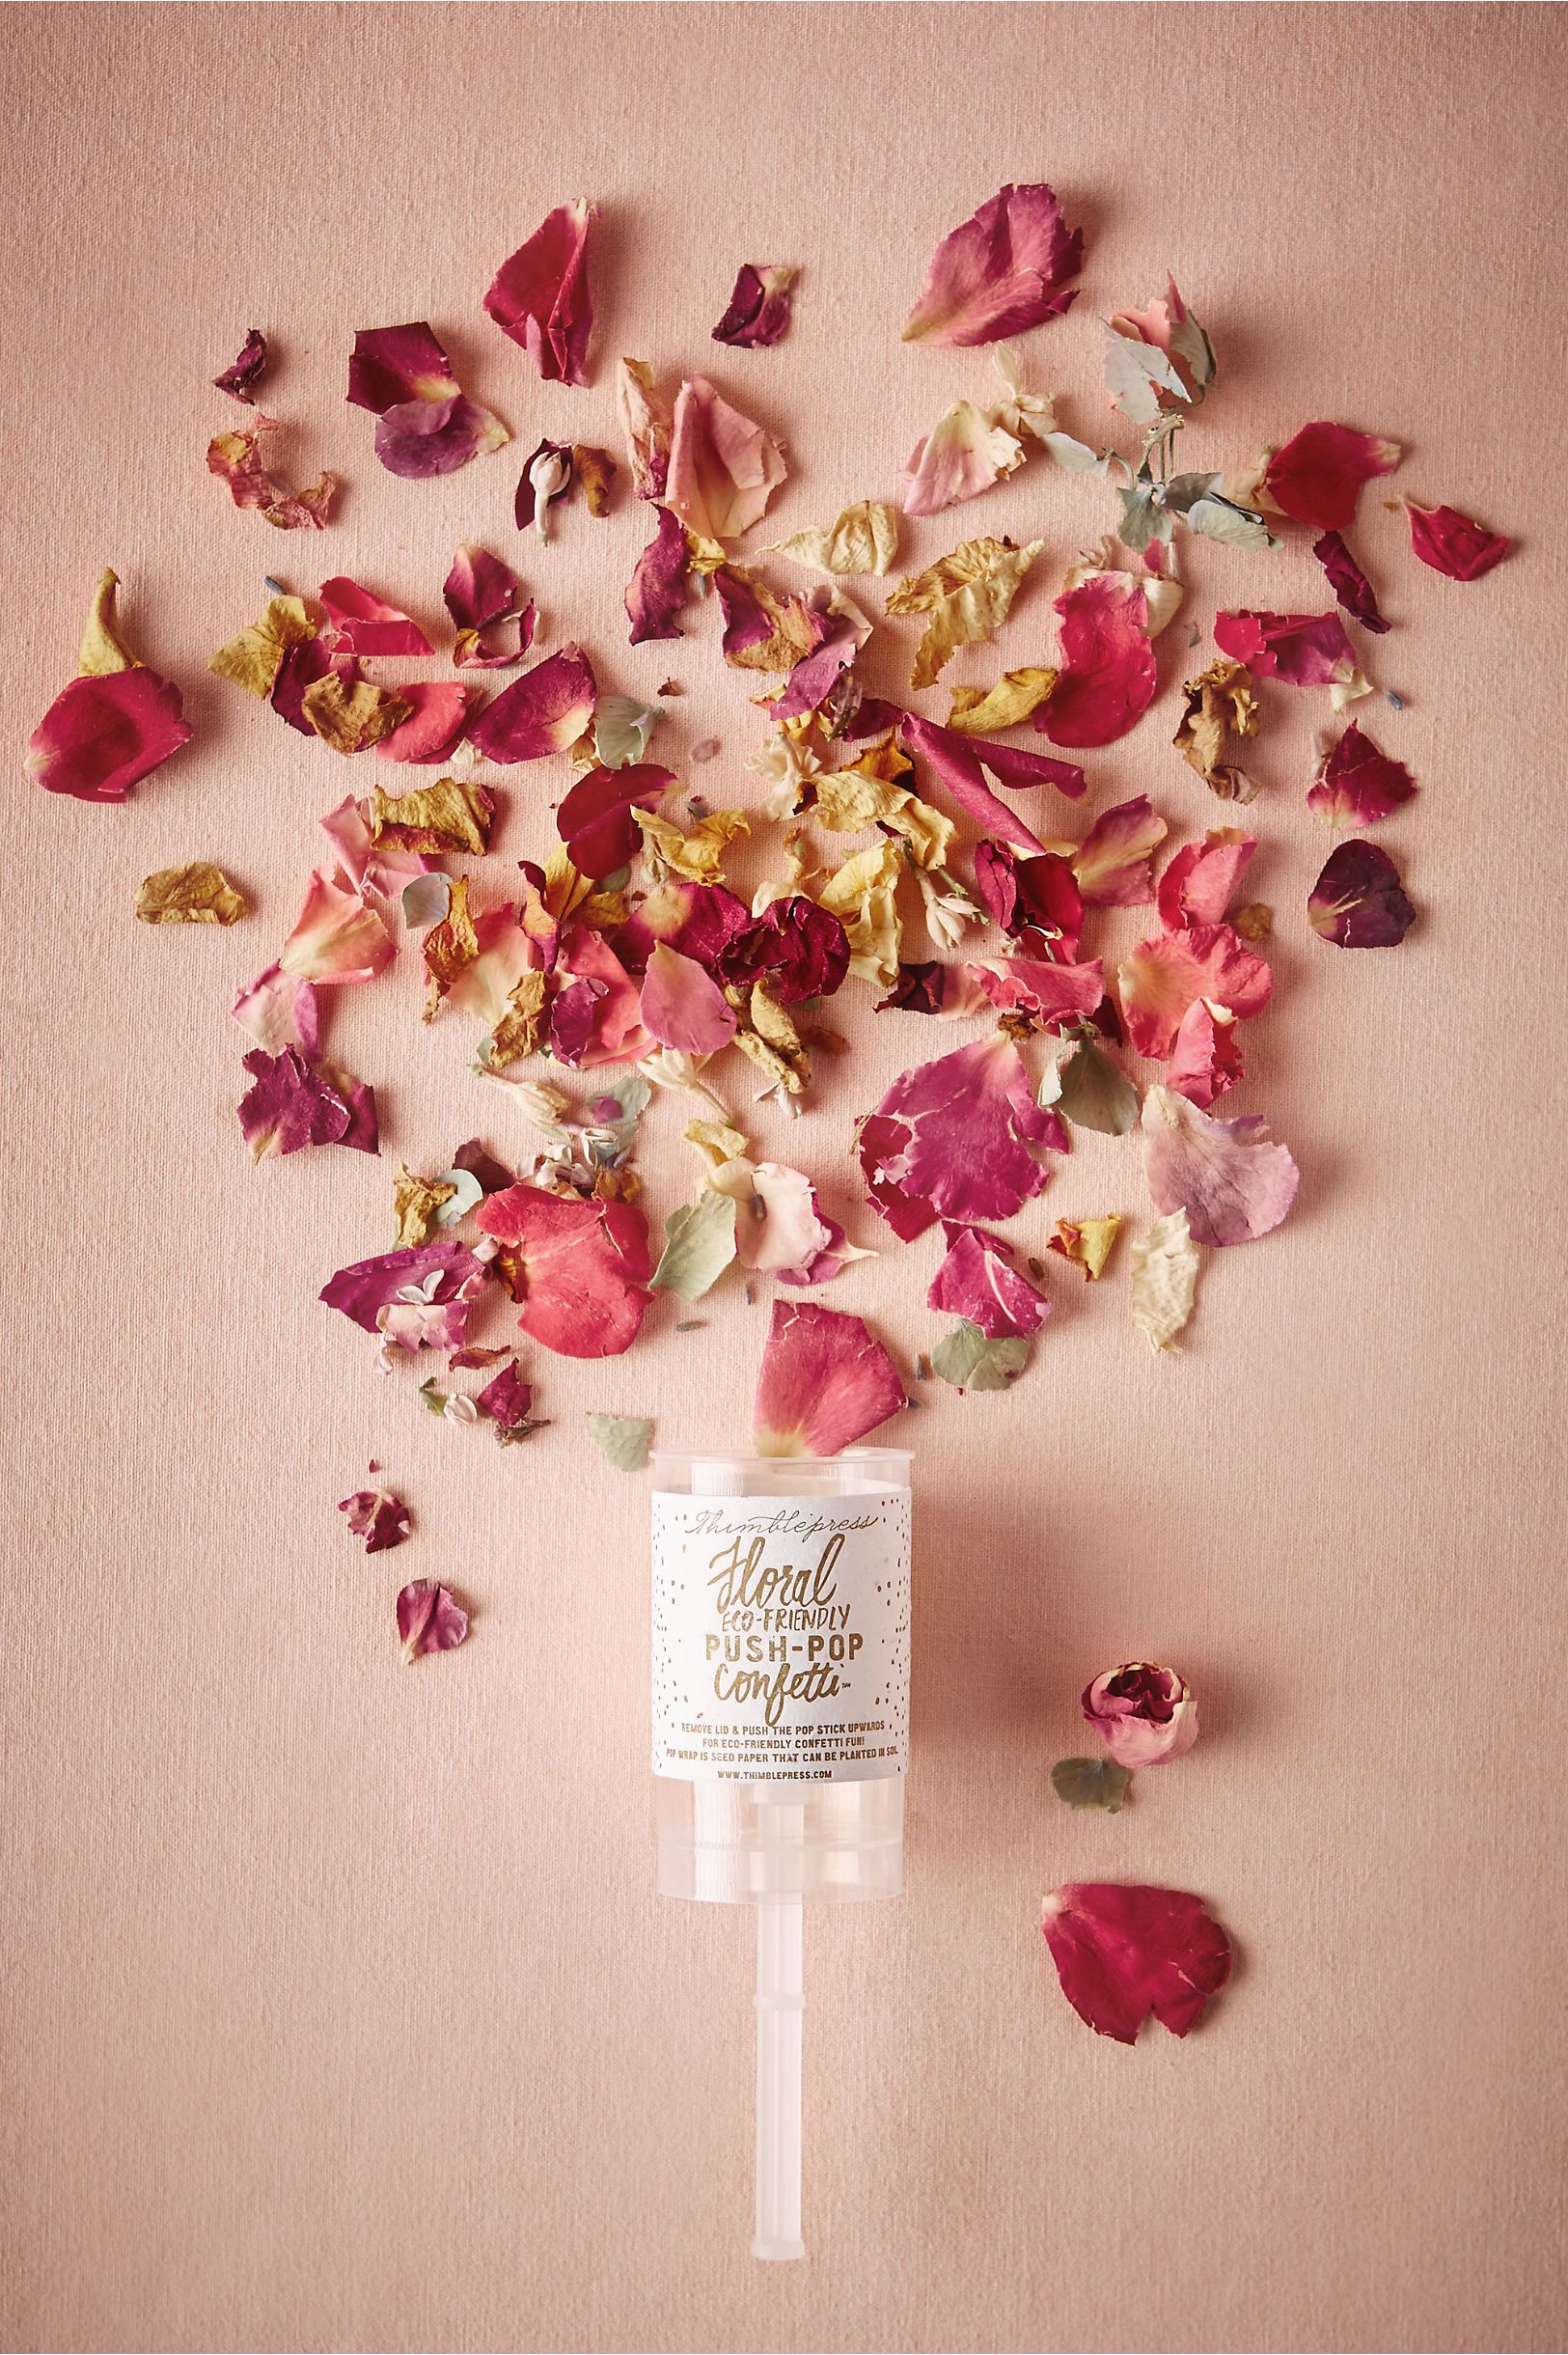 Have Your Flower S Toss Dried Rose Petals In The Air With This Handy Popper Petal Push Pop From Bhldn